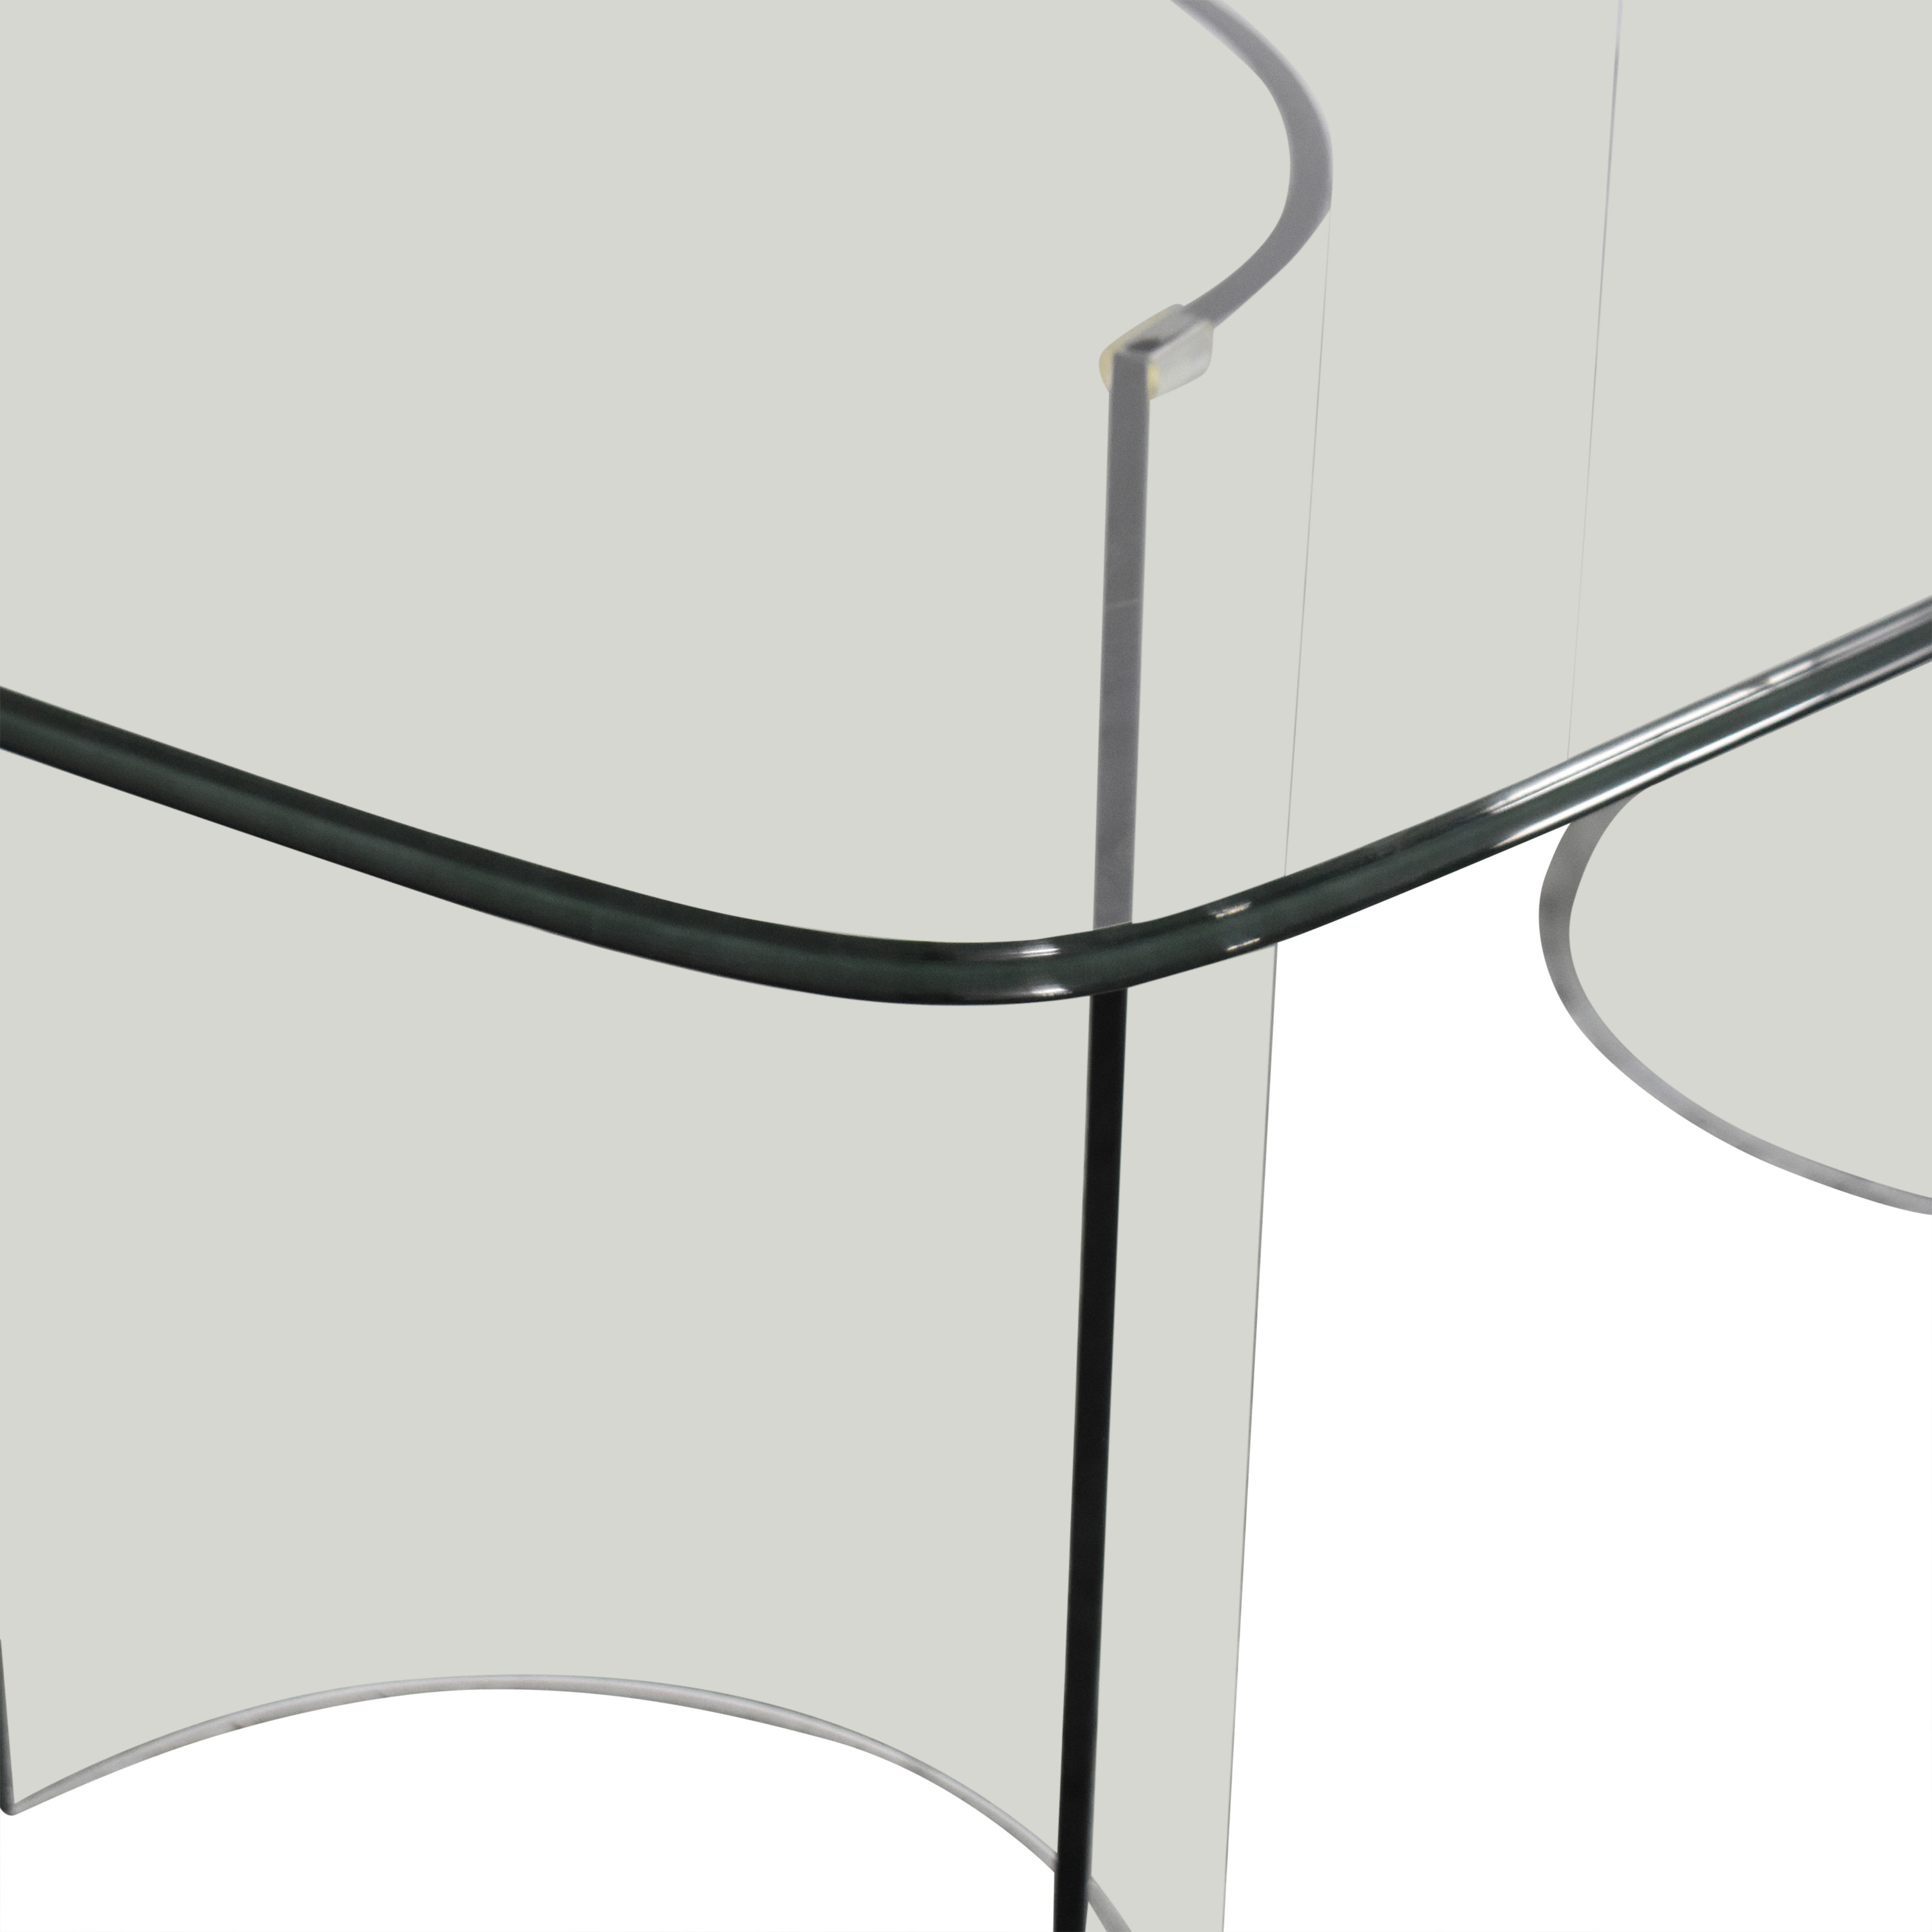 Raymour & Flanigan Raymour & Flanigan Beveled Tempered Glass Dining Table nj